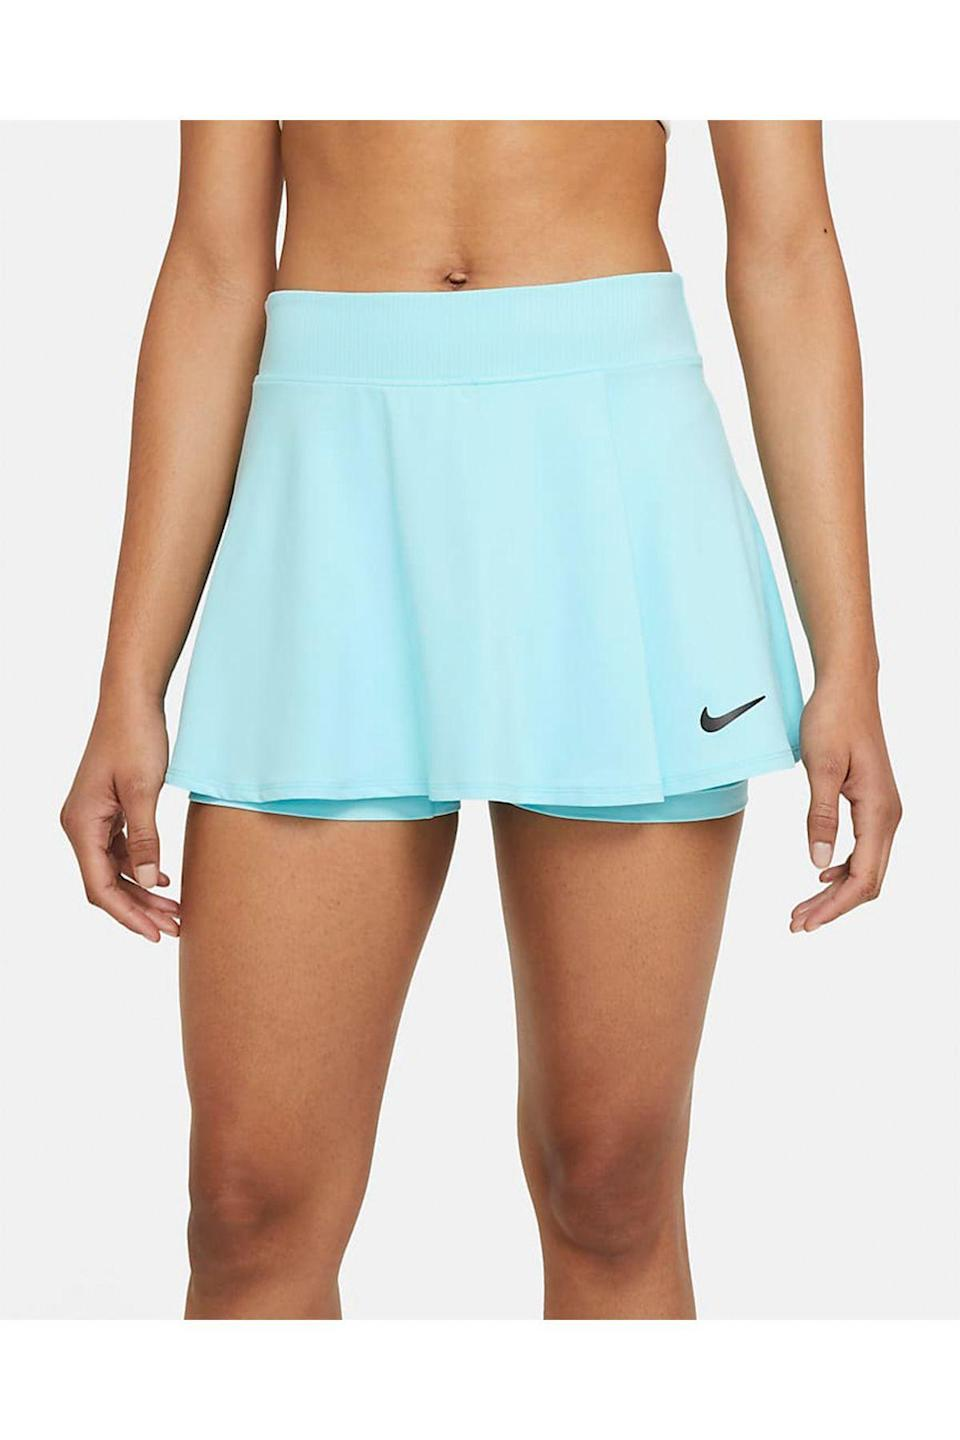 """<p><strong>Nike</strong></p><p>nike.com</p><p><strong>$34.97</strong></p><p><a href=""""https://go.redirectingat.com?id=74968X1596630&url=https%3A%2F%2Fwww.nike.com%2Ft%2Fnikecourt-victory-womens-tennis-skirt-BbWGm4&sref=https%3A%2F%2Fwww.townandcountrymag.com%2Fstyle%2Ffashion-trends%2Fg36717600%2Fbest-tennis-skirts%2F"""" rel=""""nofollow noopener"""" target=""""_blank"""" data-ylk=""""slk:Shop Now"""" class=""""link rapid-noclick-resp"""">Shop Now</a></p><p>Nike's sherbet-hued versions are flatteringly high-waisted and equipped with Dri-FIT technology for a seamless transition straight from court to brunch.</p>"""